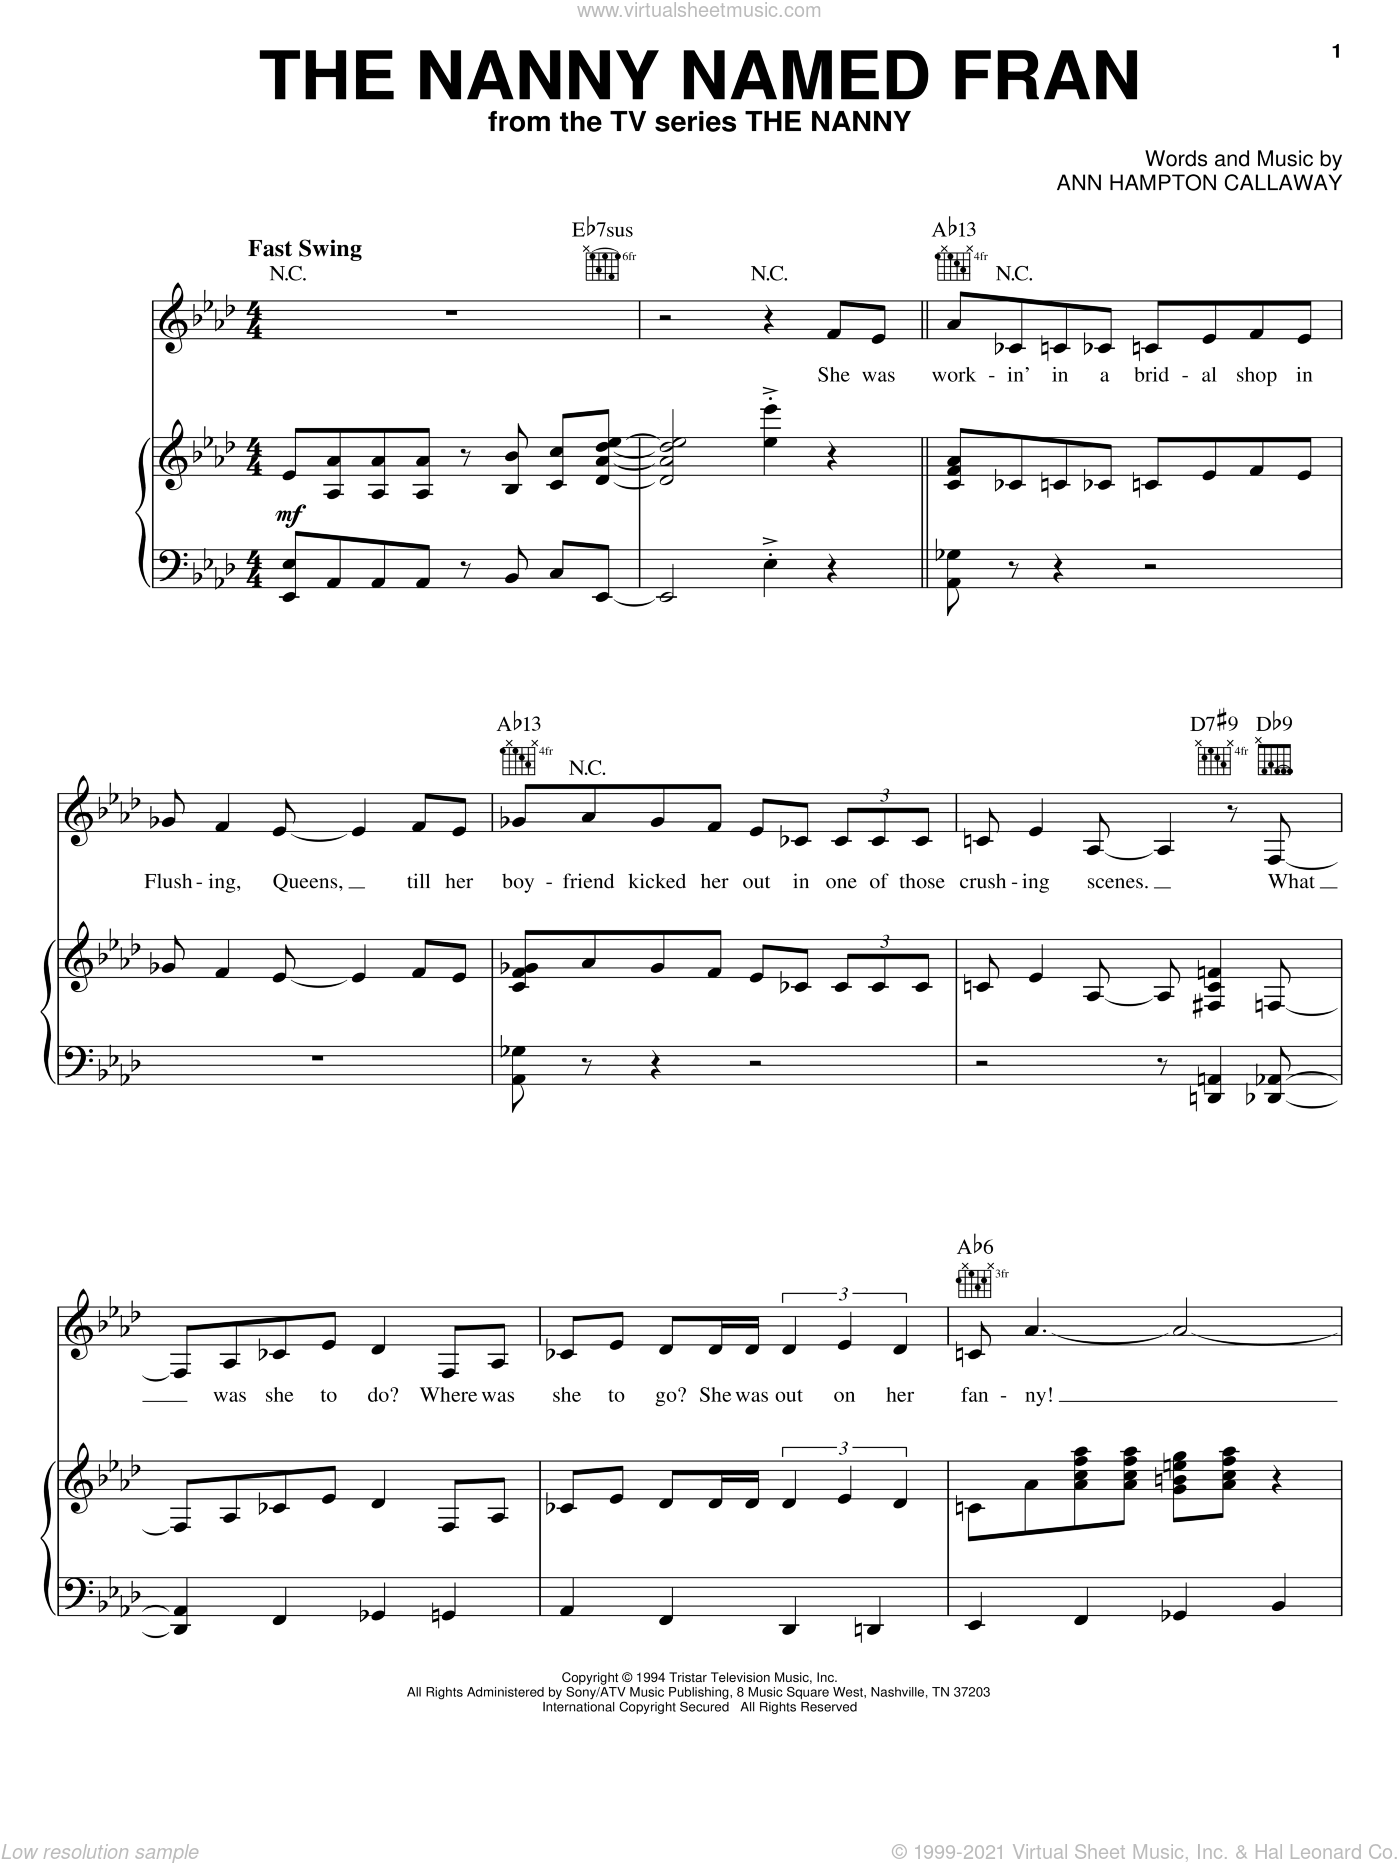 The Nanny Named Fran sheet music for voice, piano or guitar by Ann Hampton Callaway. Score Image Preview.